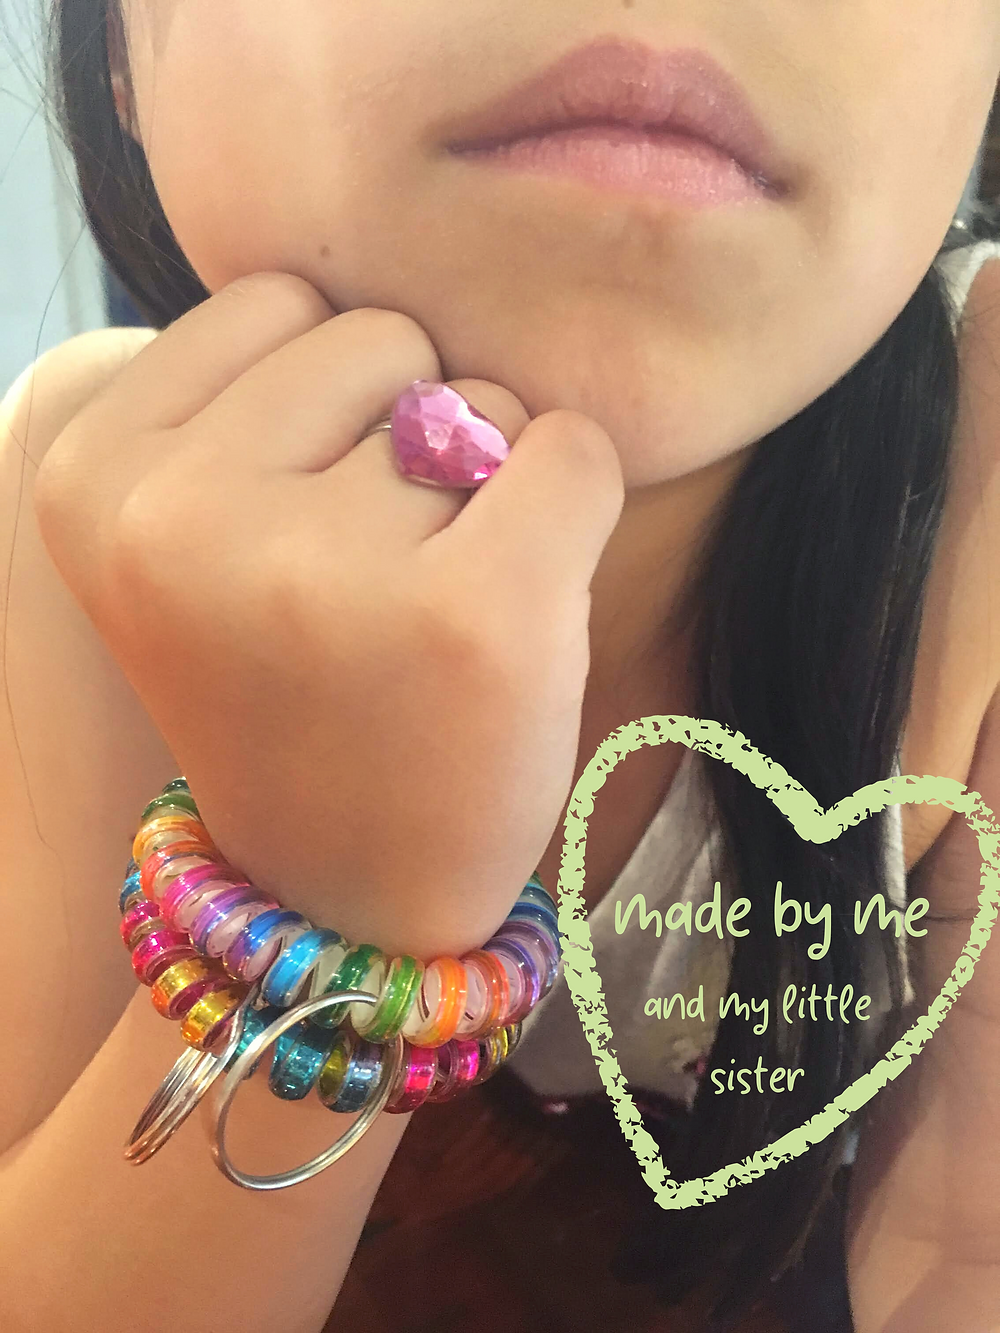 key ring coil bracelets handmade by kid entrepreneurs as they learn to spend save and share. percentage donated to charity.